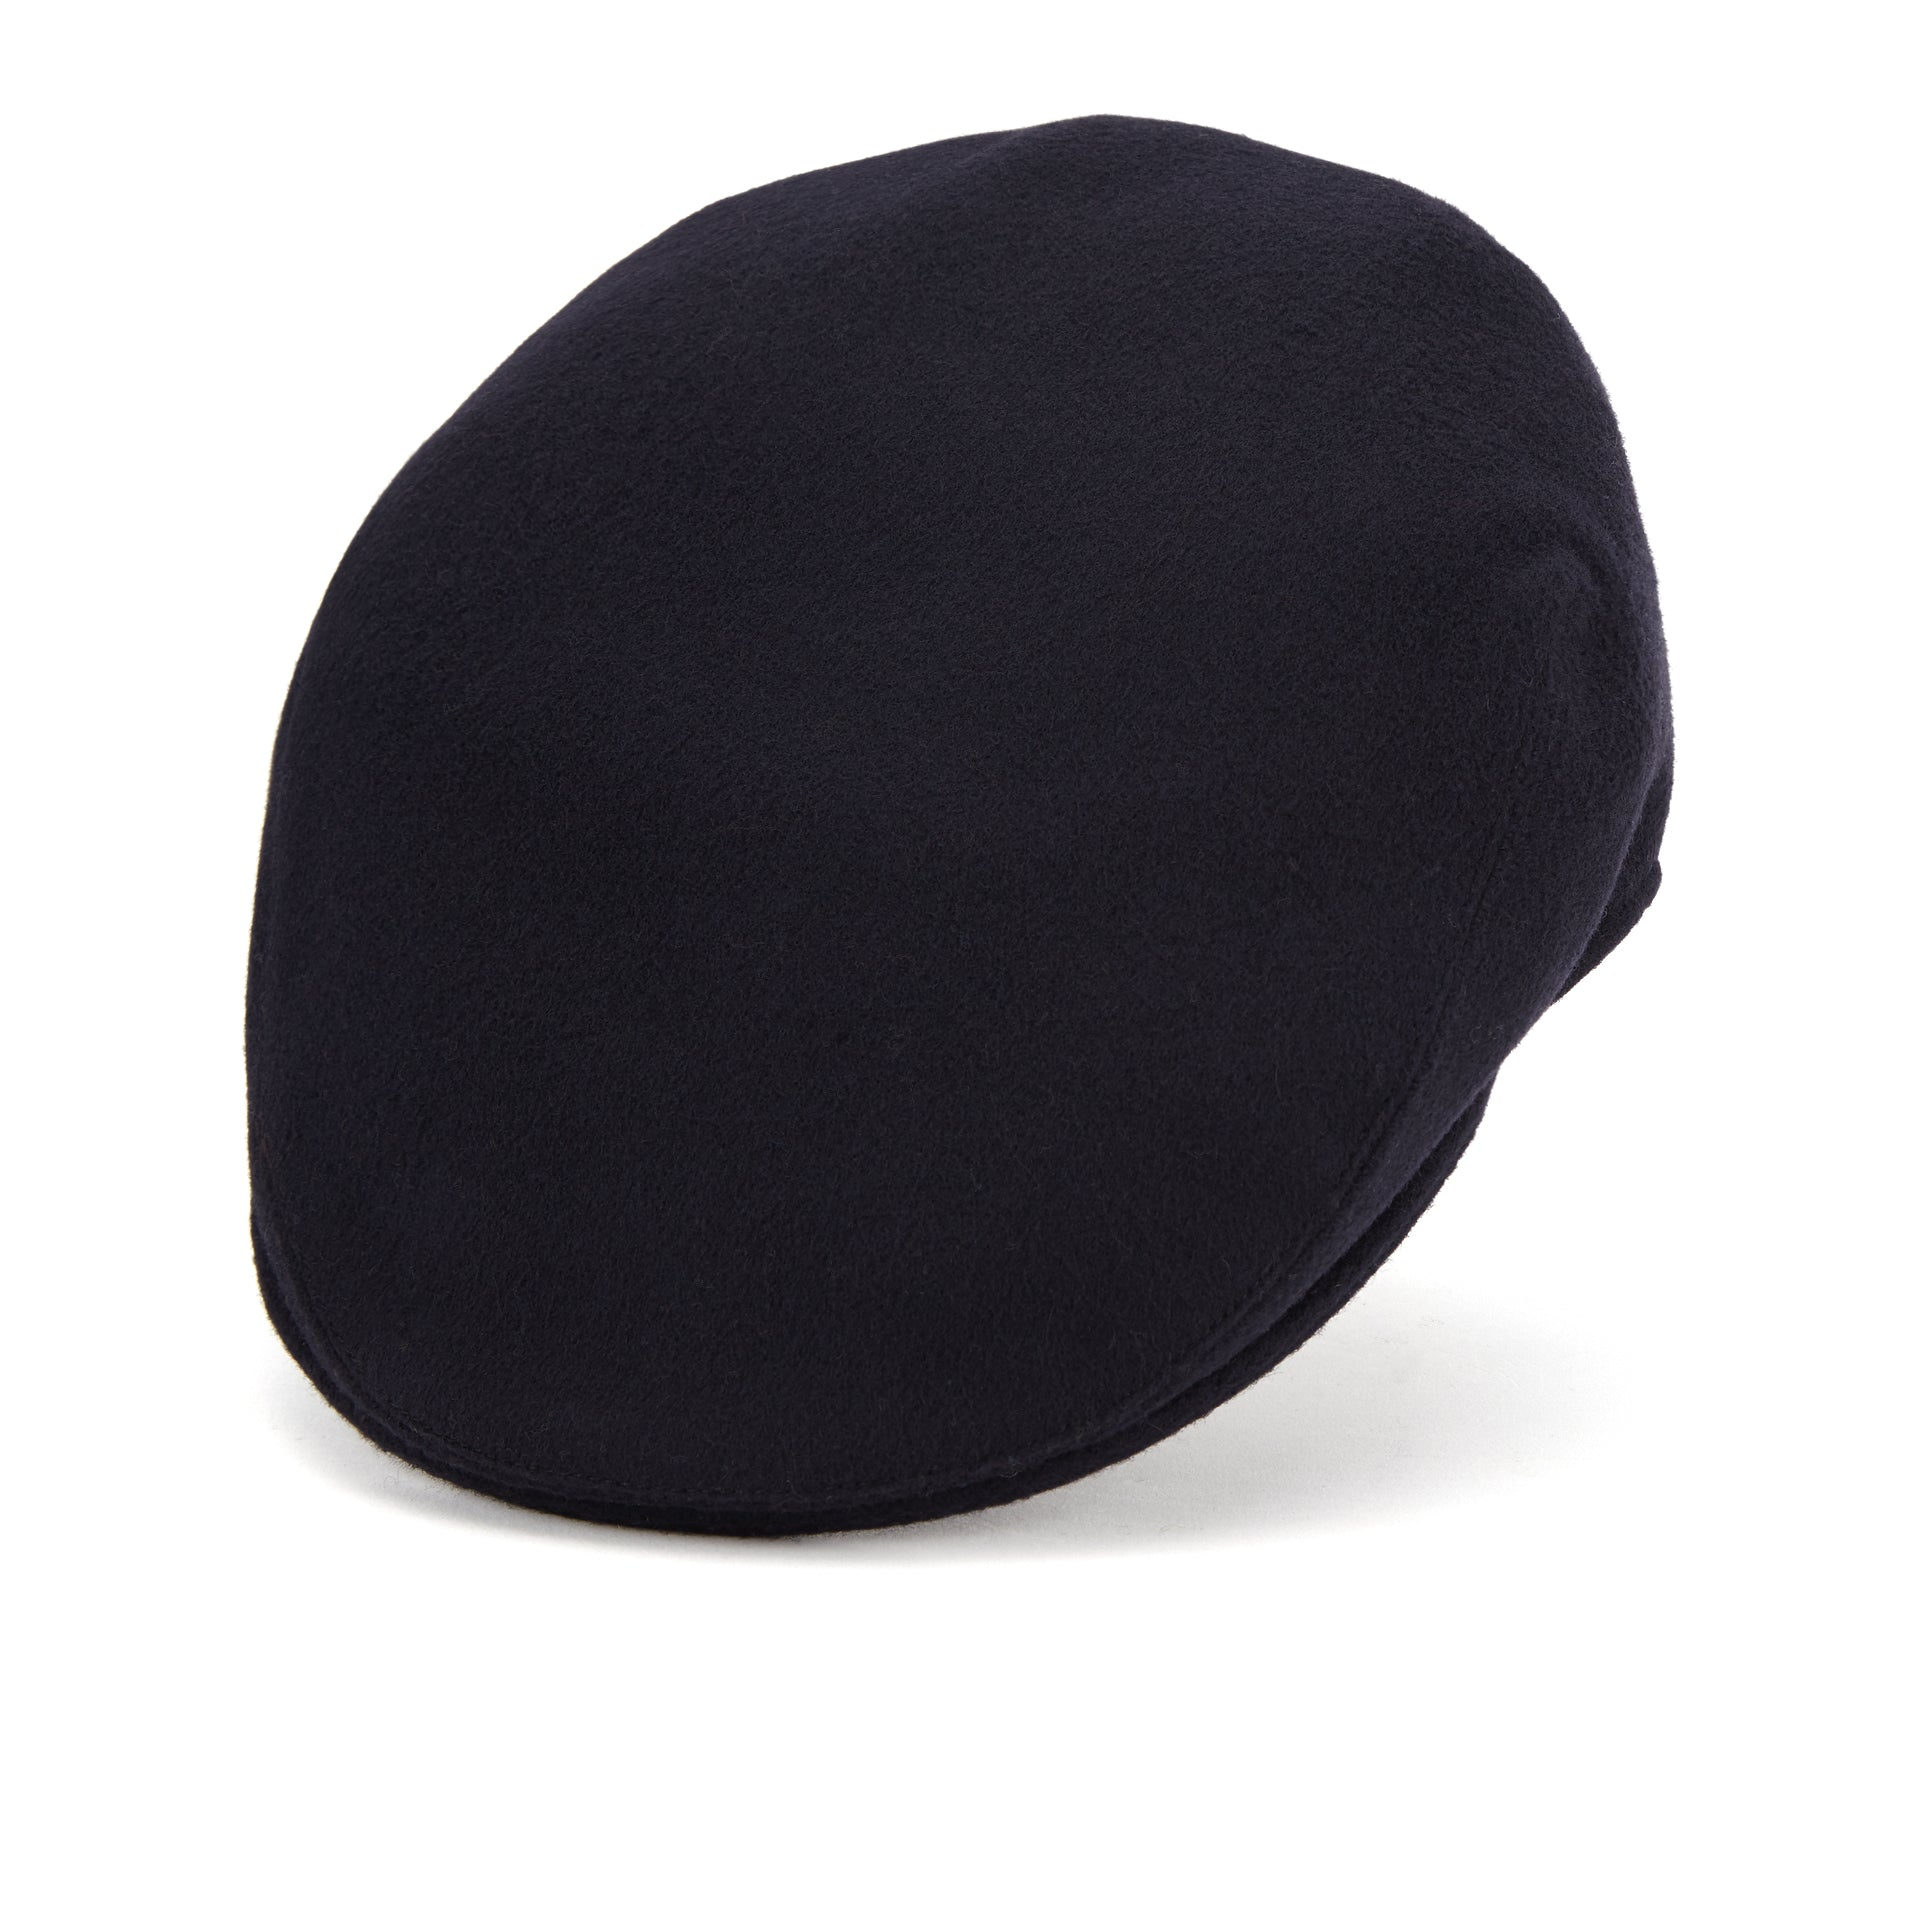 Gill flat cap - Flat caps - Lock & Co. Hatters London UK